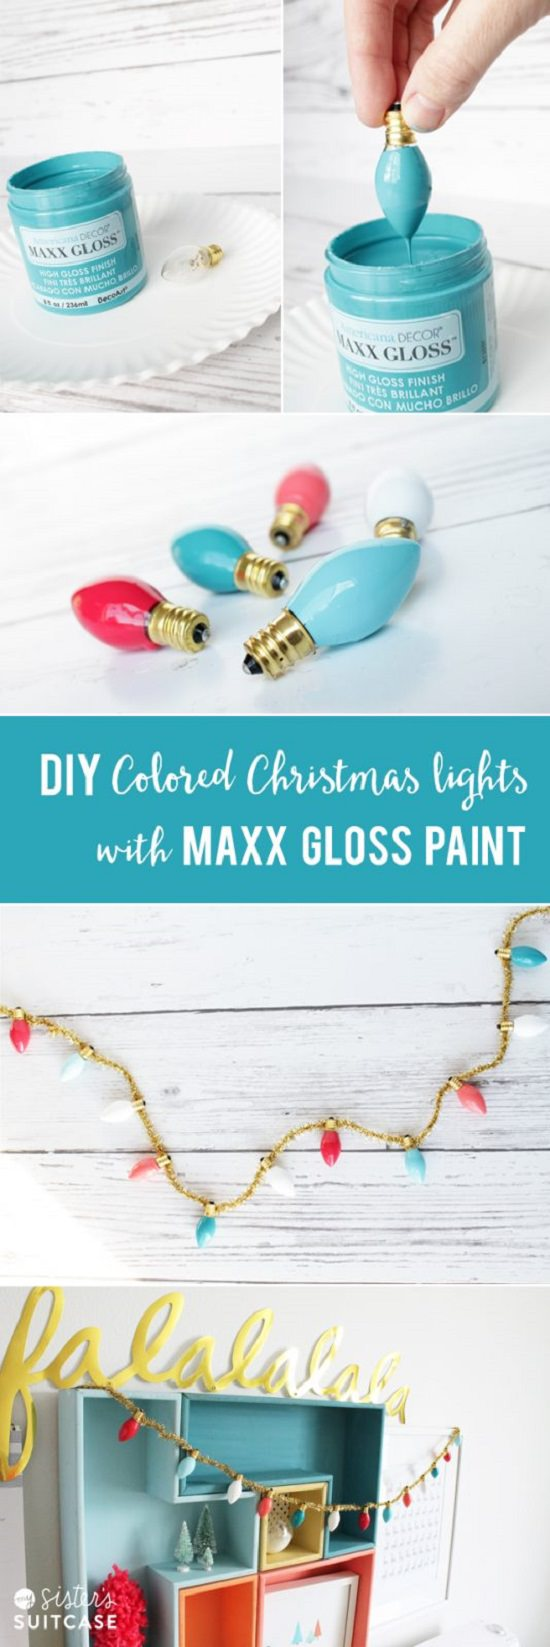 diy christmas decorations ideas12